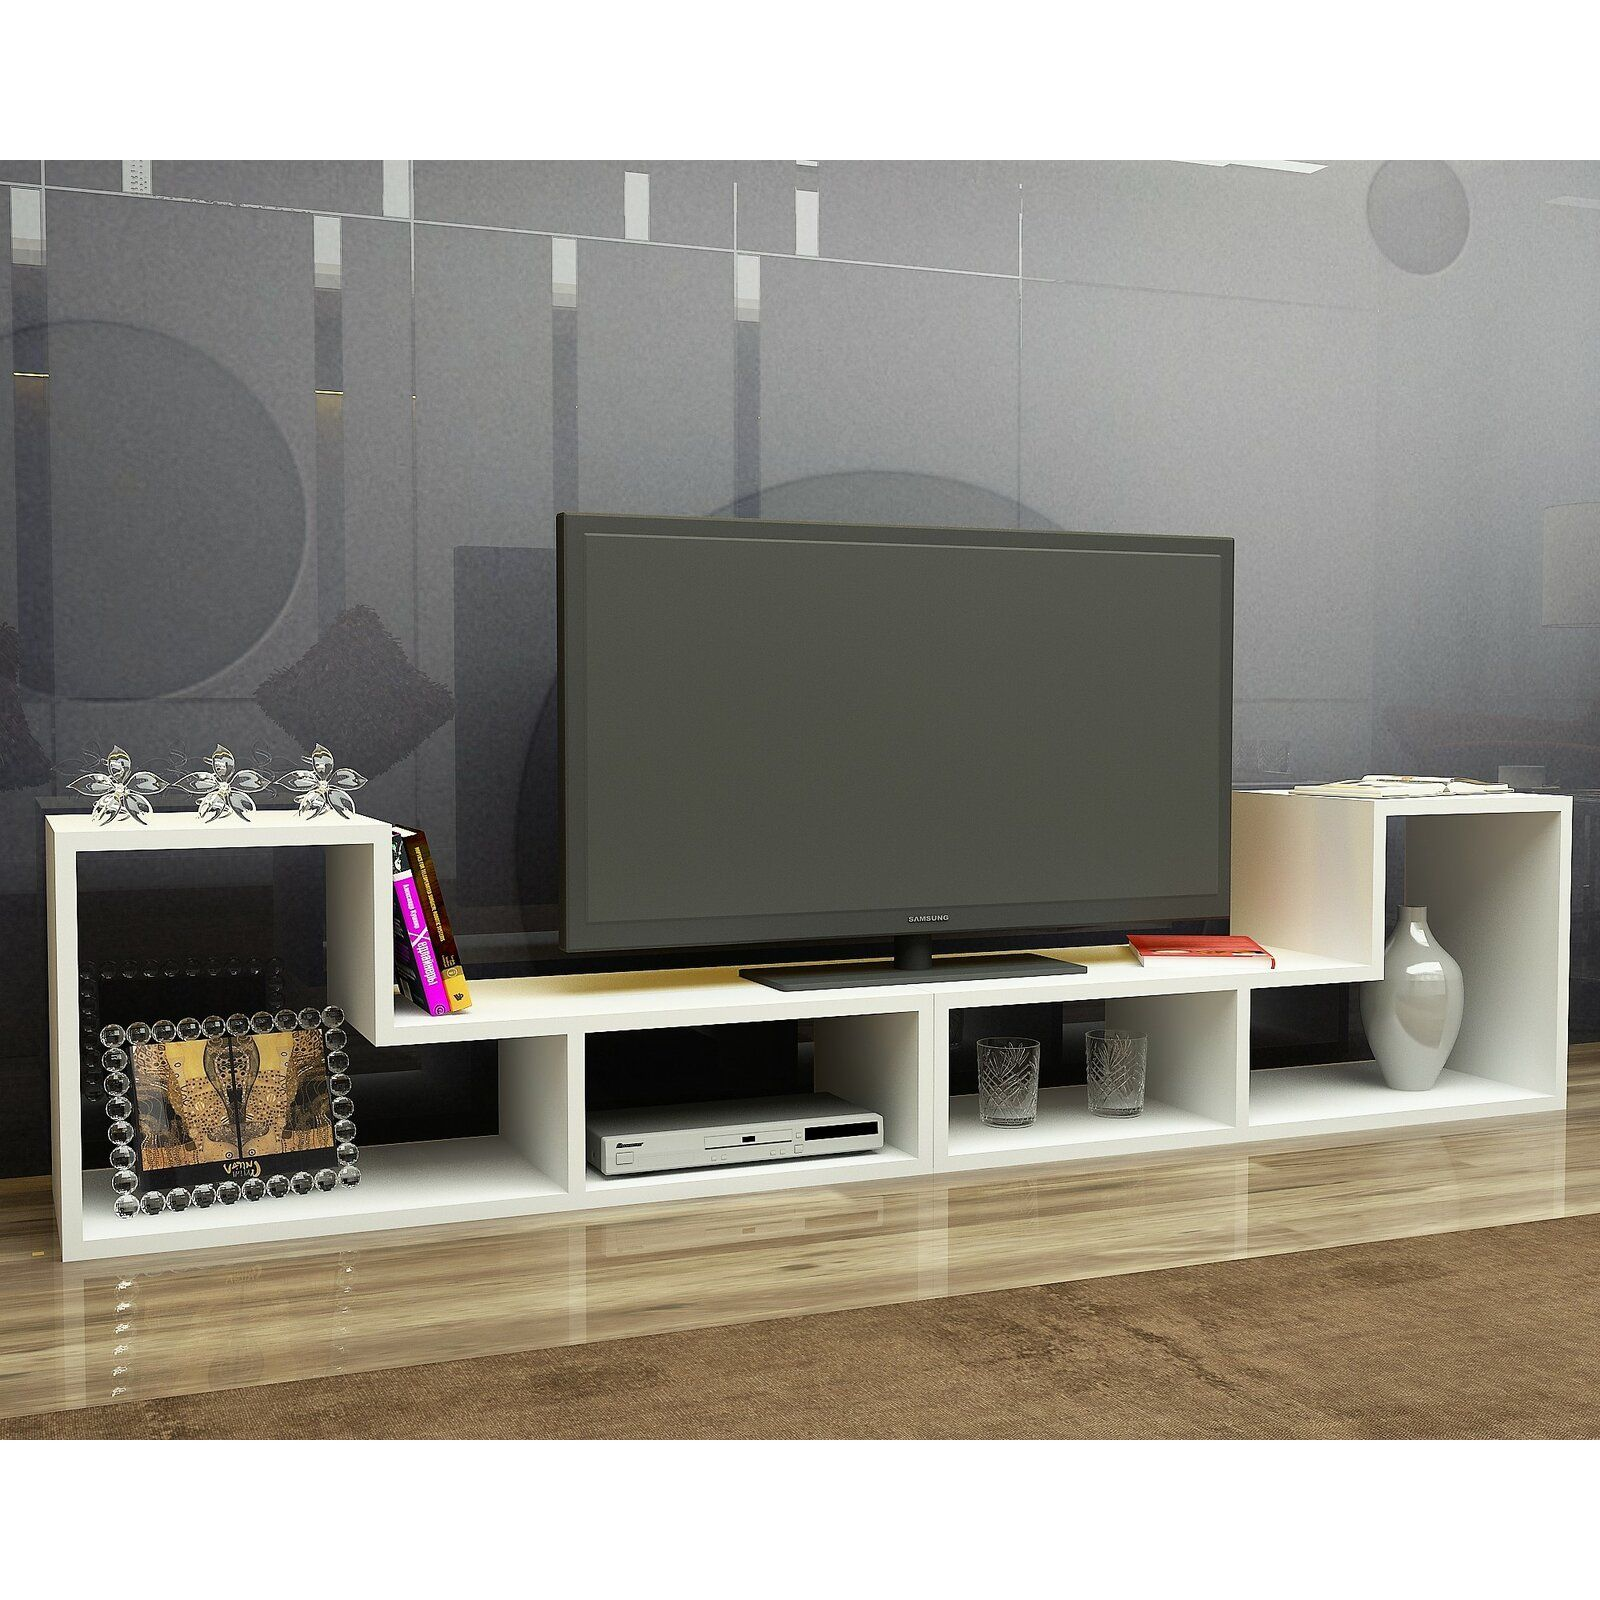 Bynum Tv Stand For Tvs Up To 55 Tv Stand Wood Living Roo